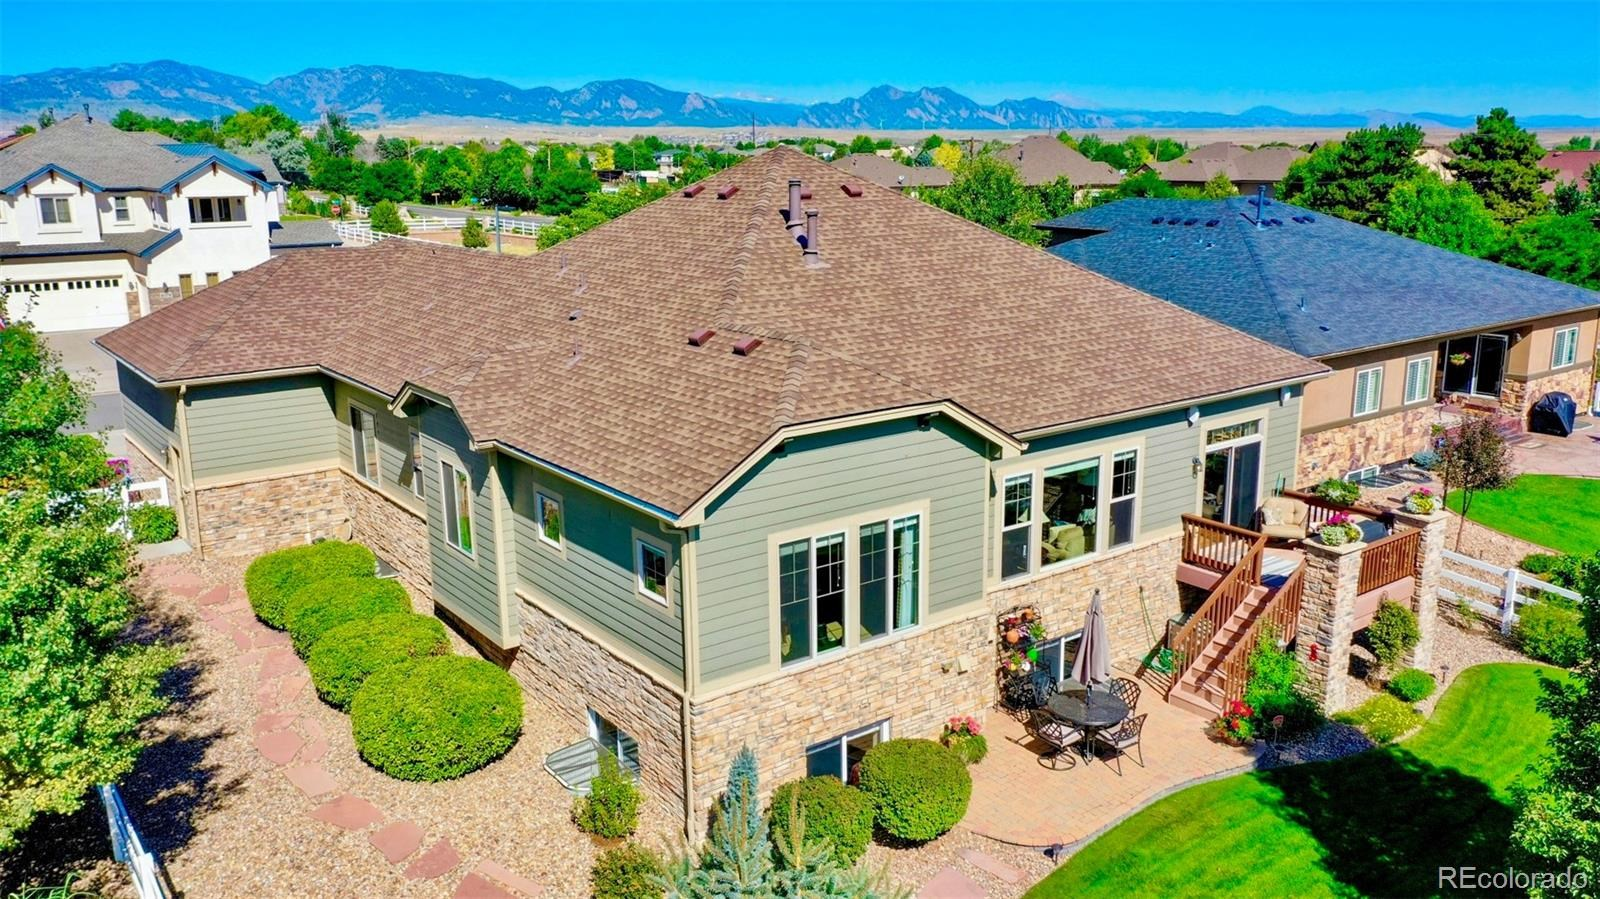 MLS# 4842638 - 28 - 8178 Vivian Street, Arvada, CO 80005